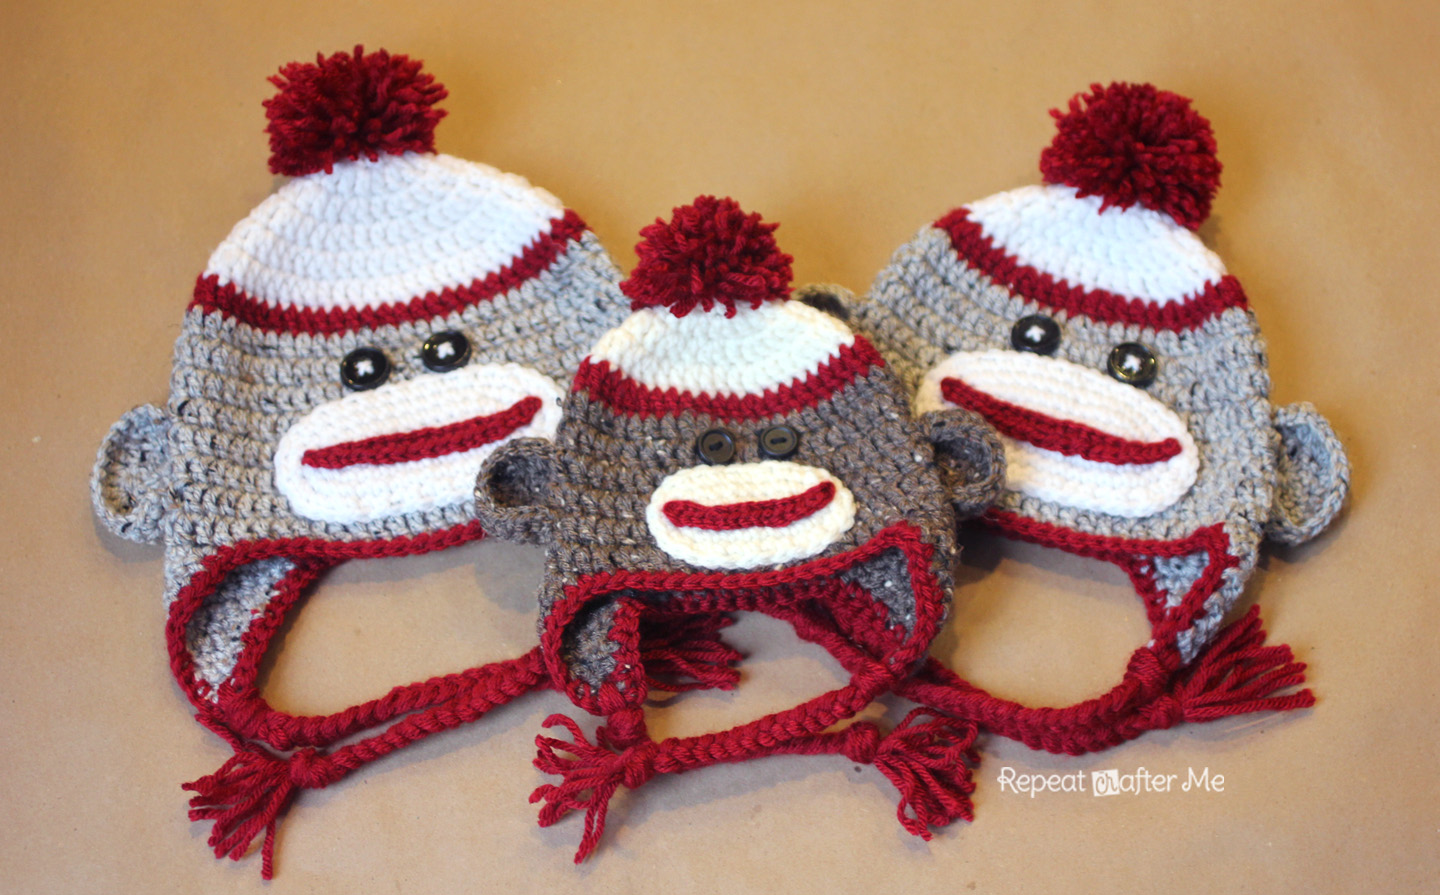 Crochet Sock Monkey Hat Pattern - Repeat Crafter Me